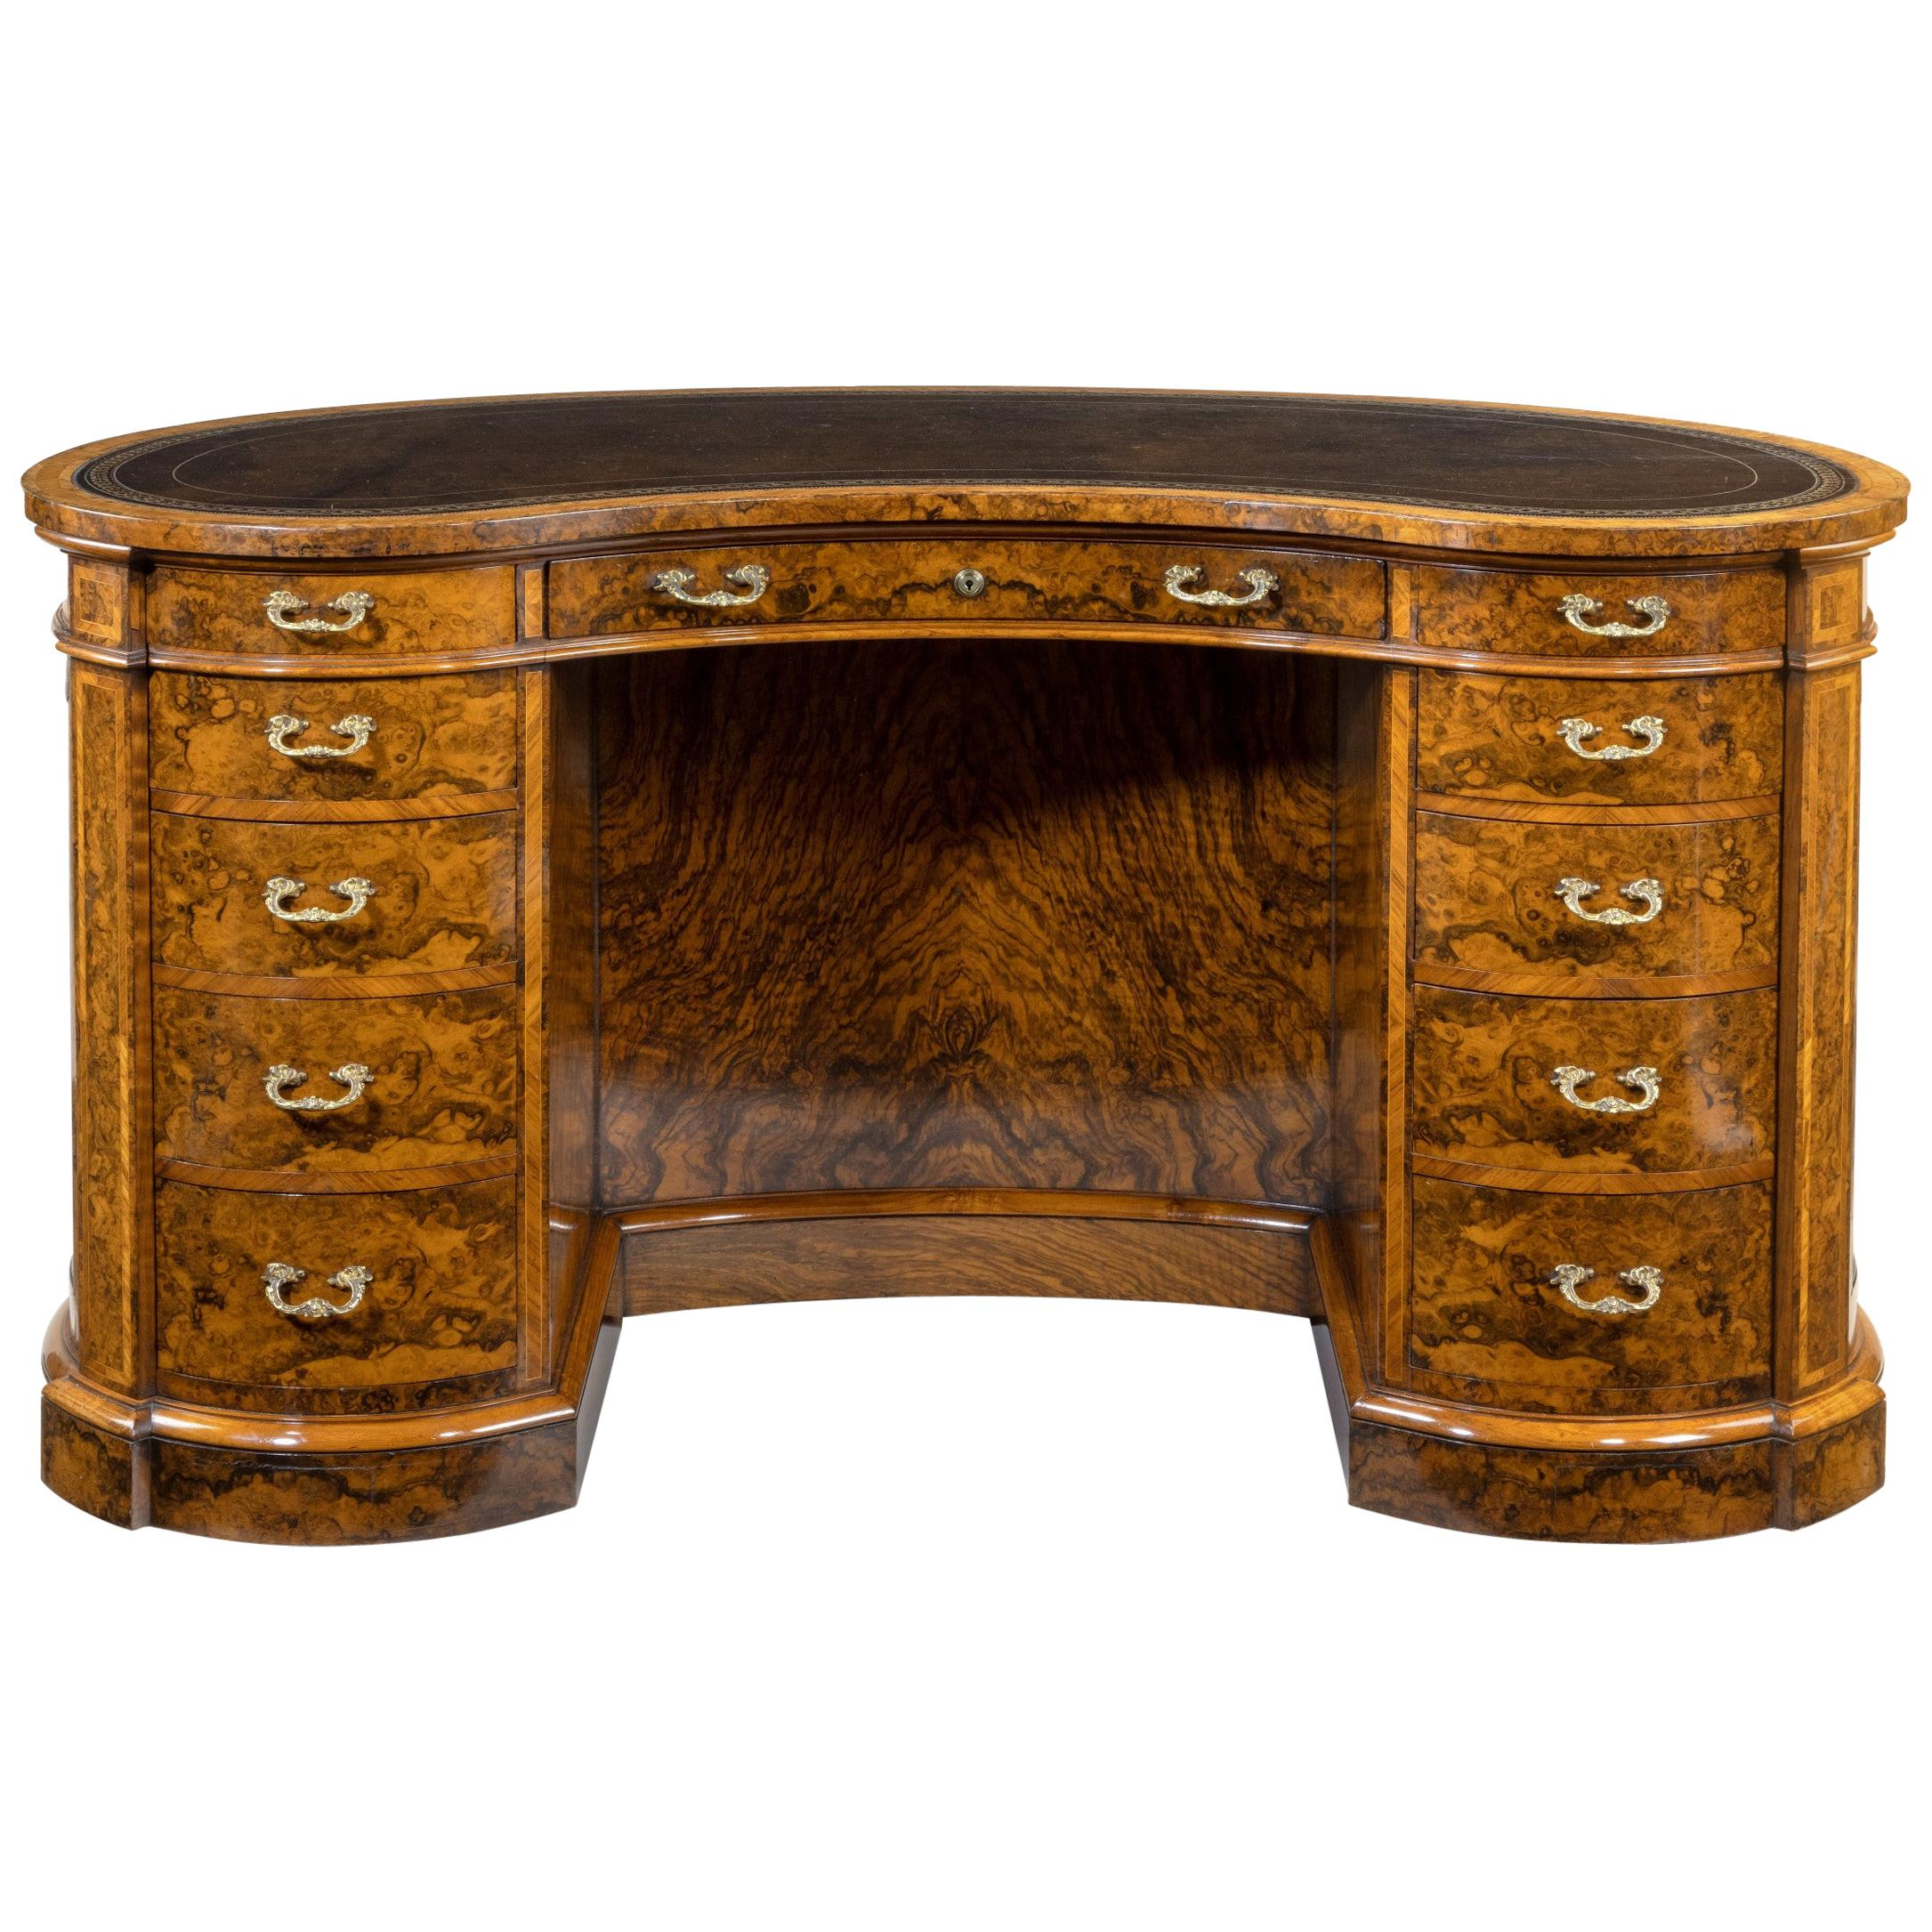 Fine Quality Victorian Kidney-Shaped Desk in Richly Figured Walnut by Gillows